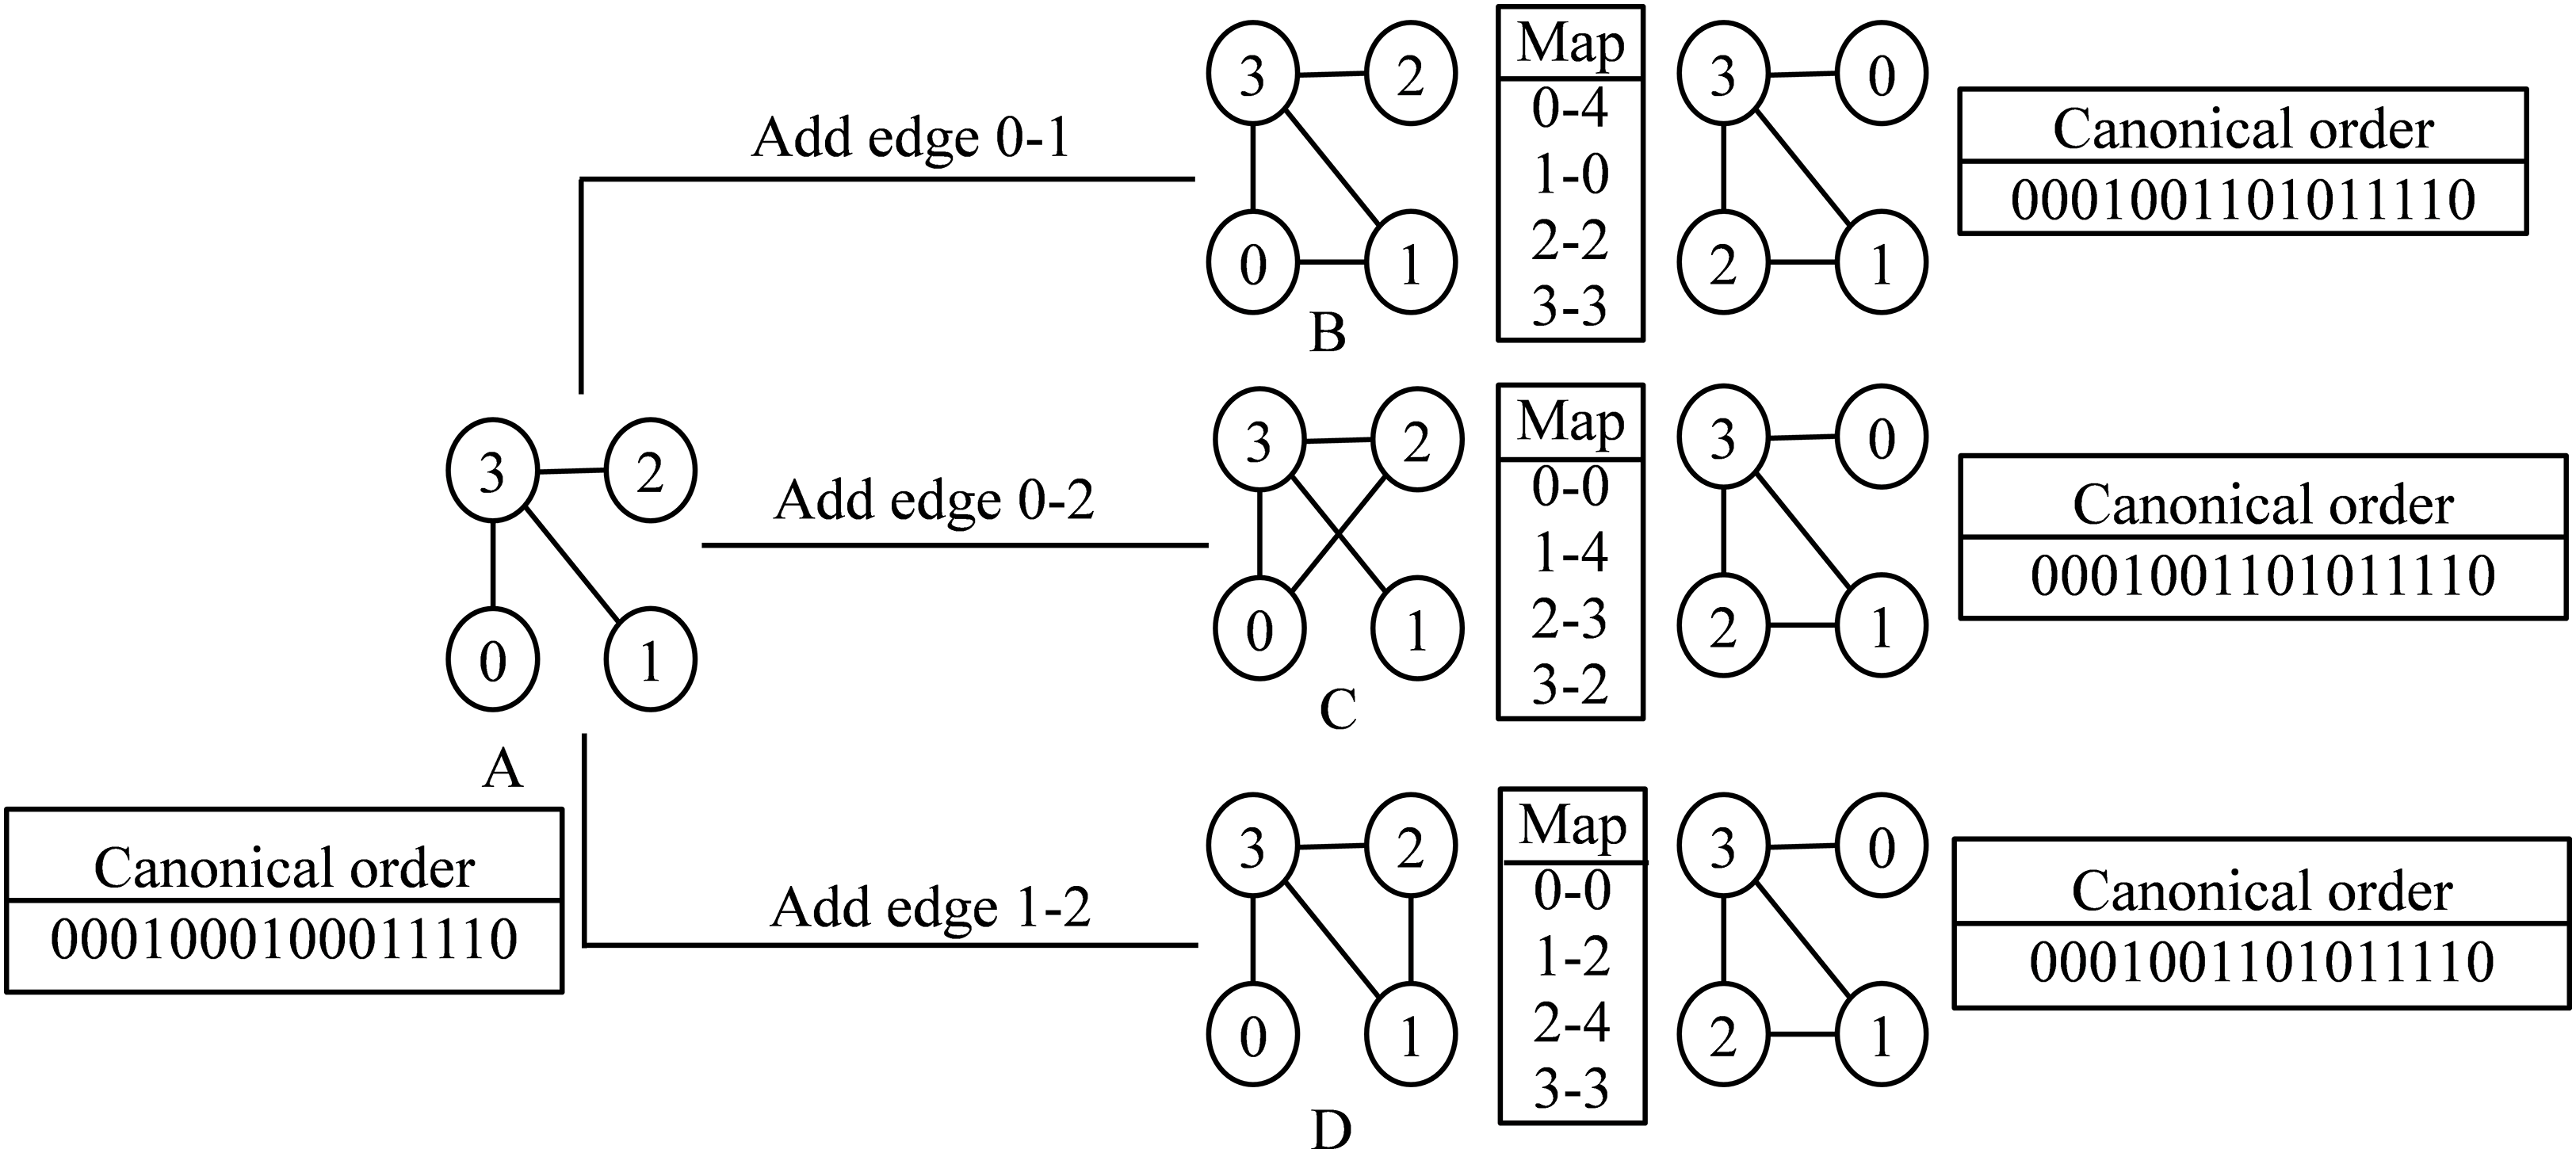 Application Of Dynamic Expansion Tree For Finding Large